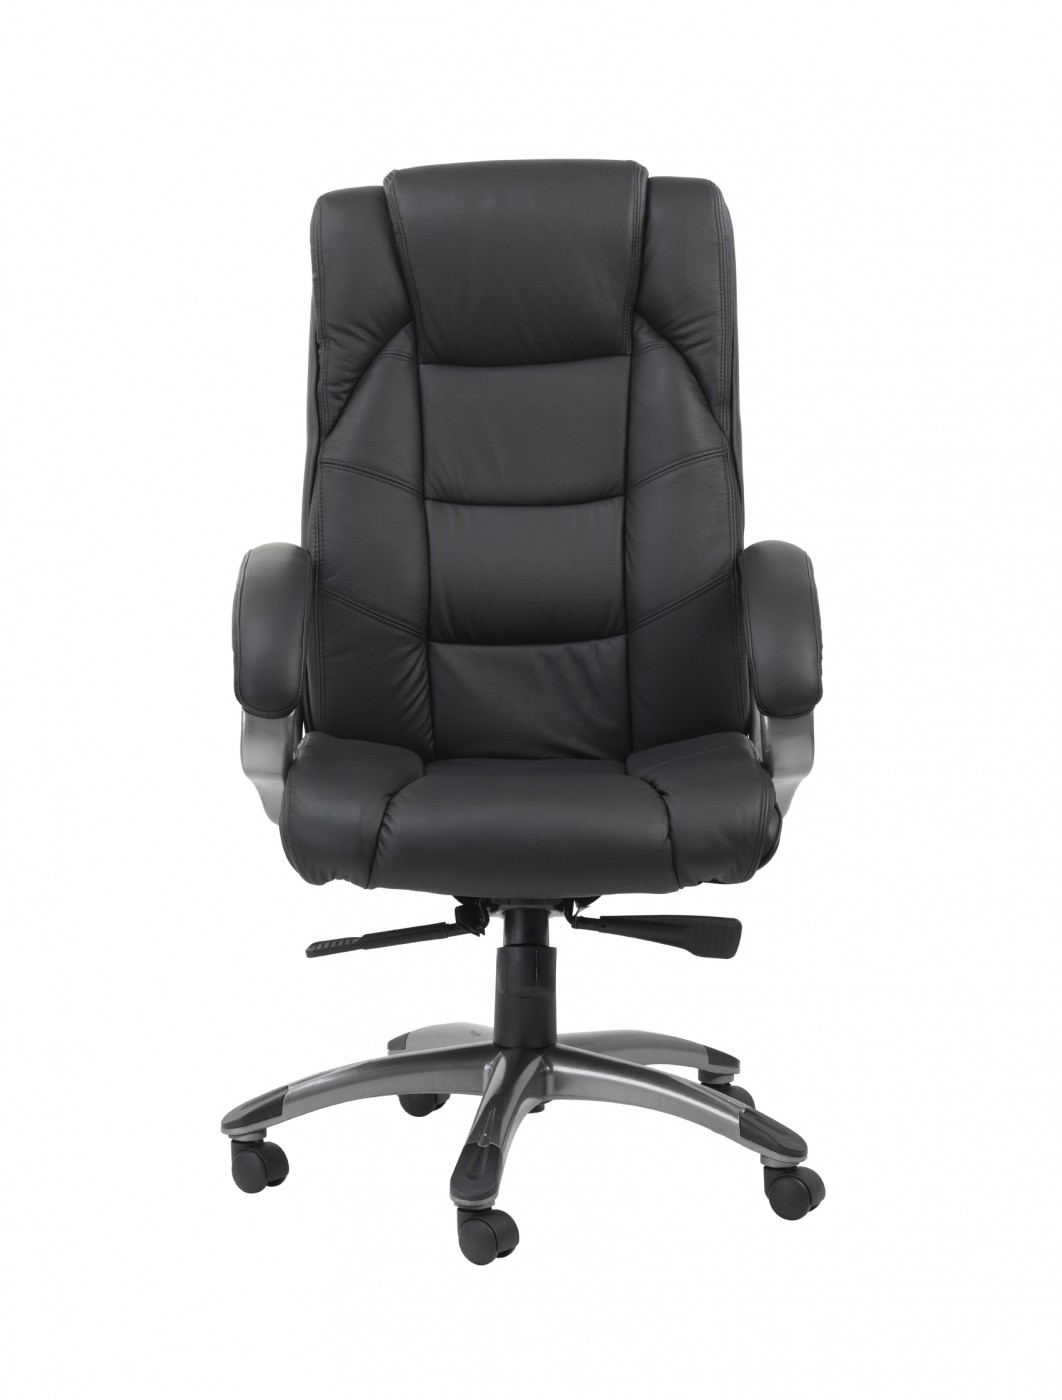 Executive Chair Aoc6322 L 121 Office Furniture